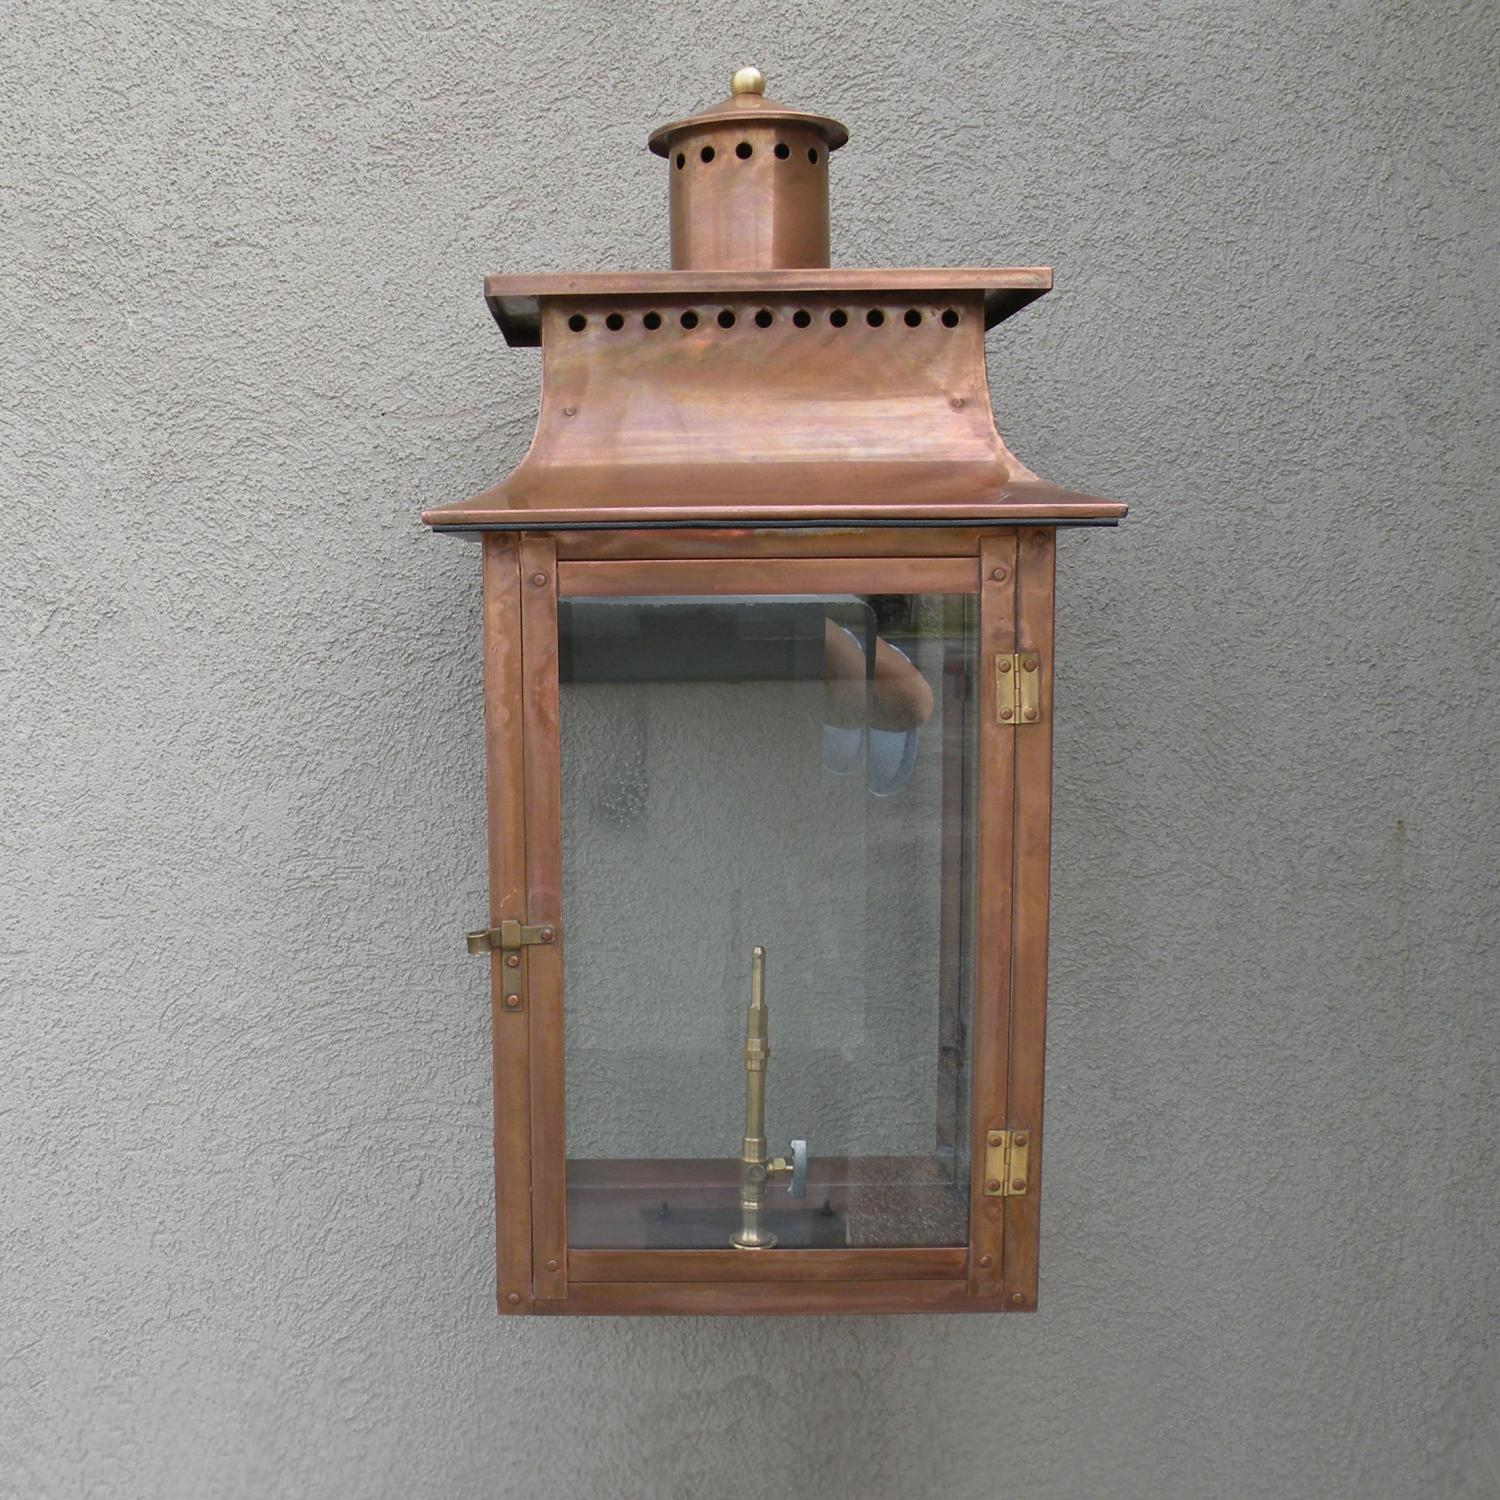 Regency Gl26 Faye Rue Large Propane Gas Light With Open Flame Burner And Manual Ignition On Decorative Corner Wall Mount at Sears.com